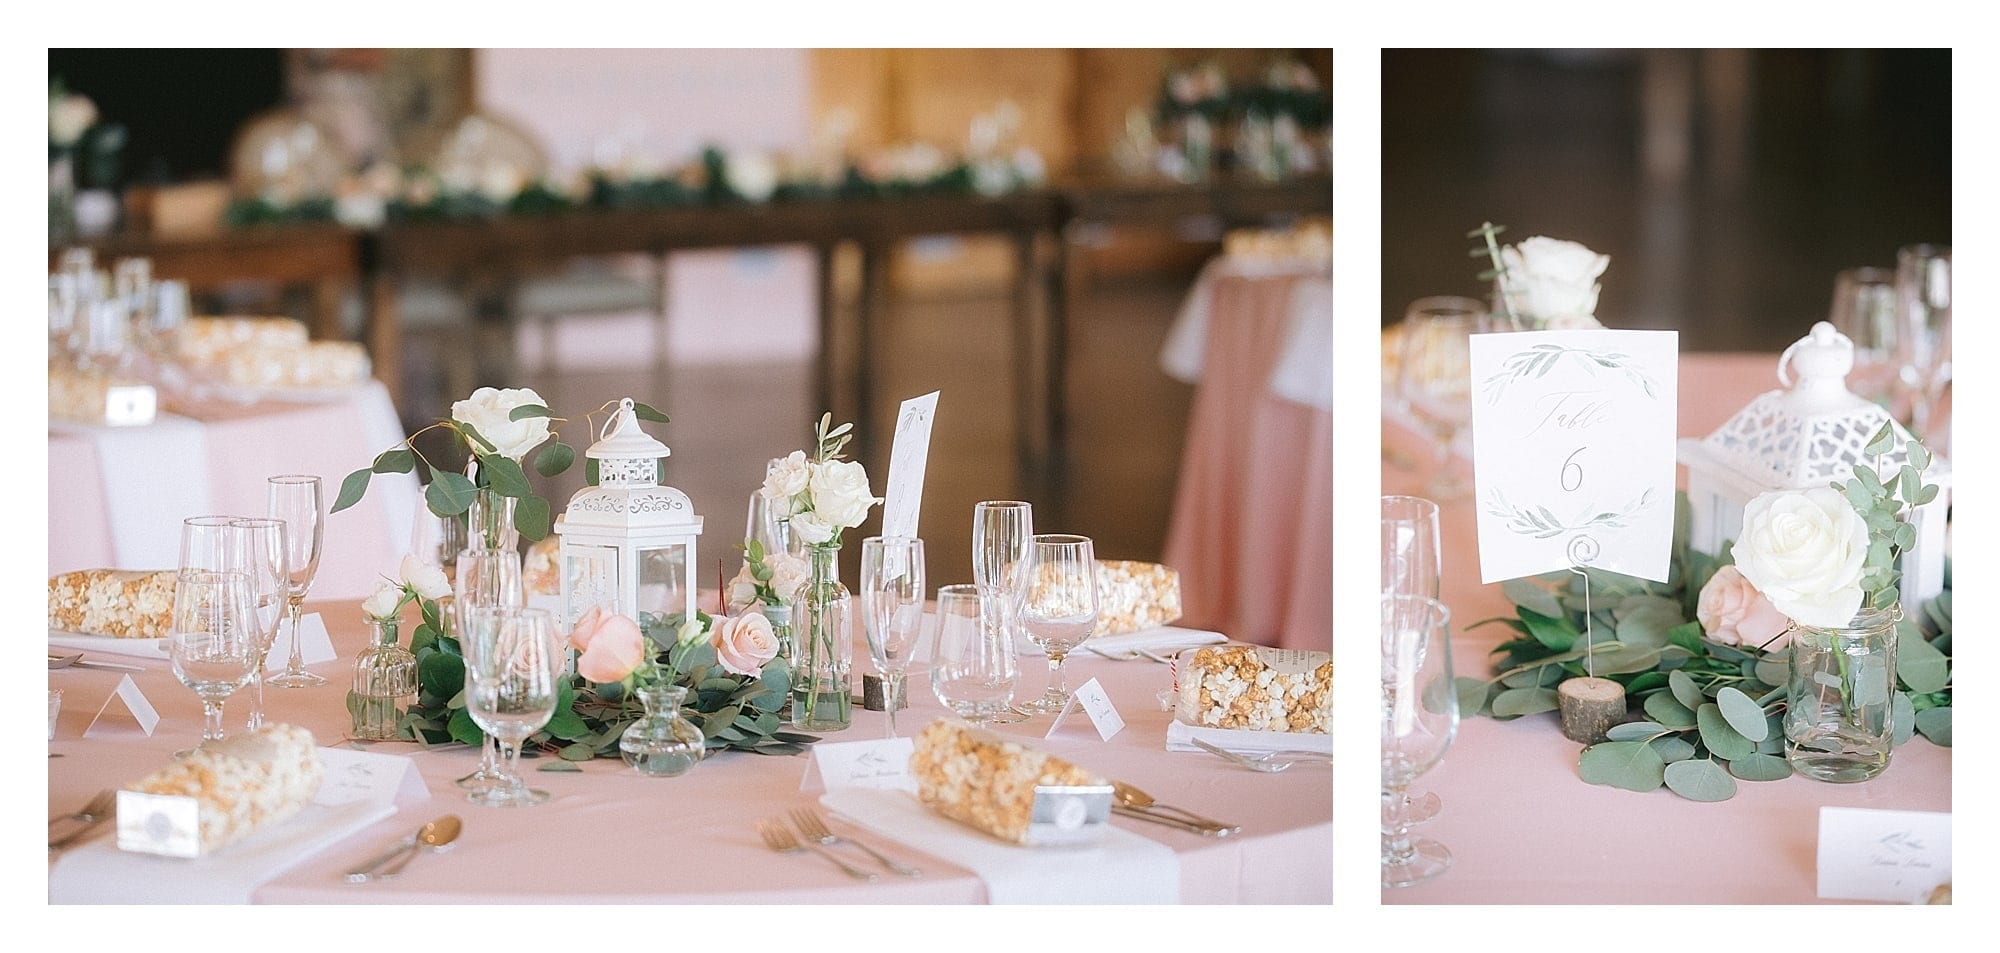 Peach and gold table settings for wedding reception